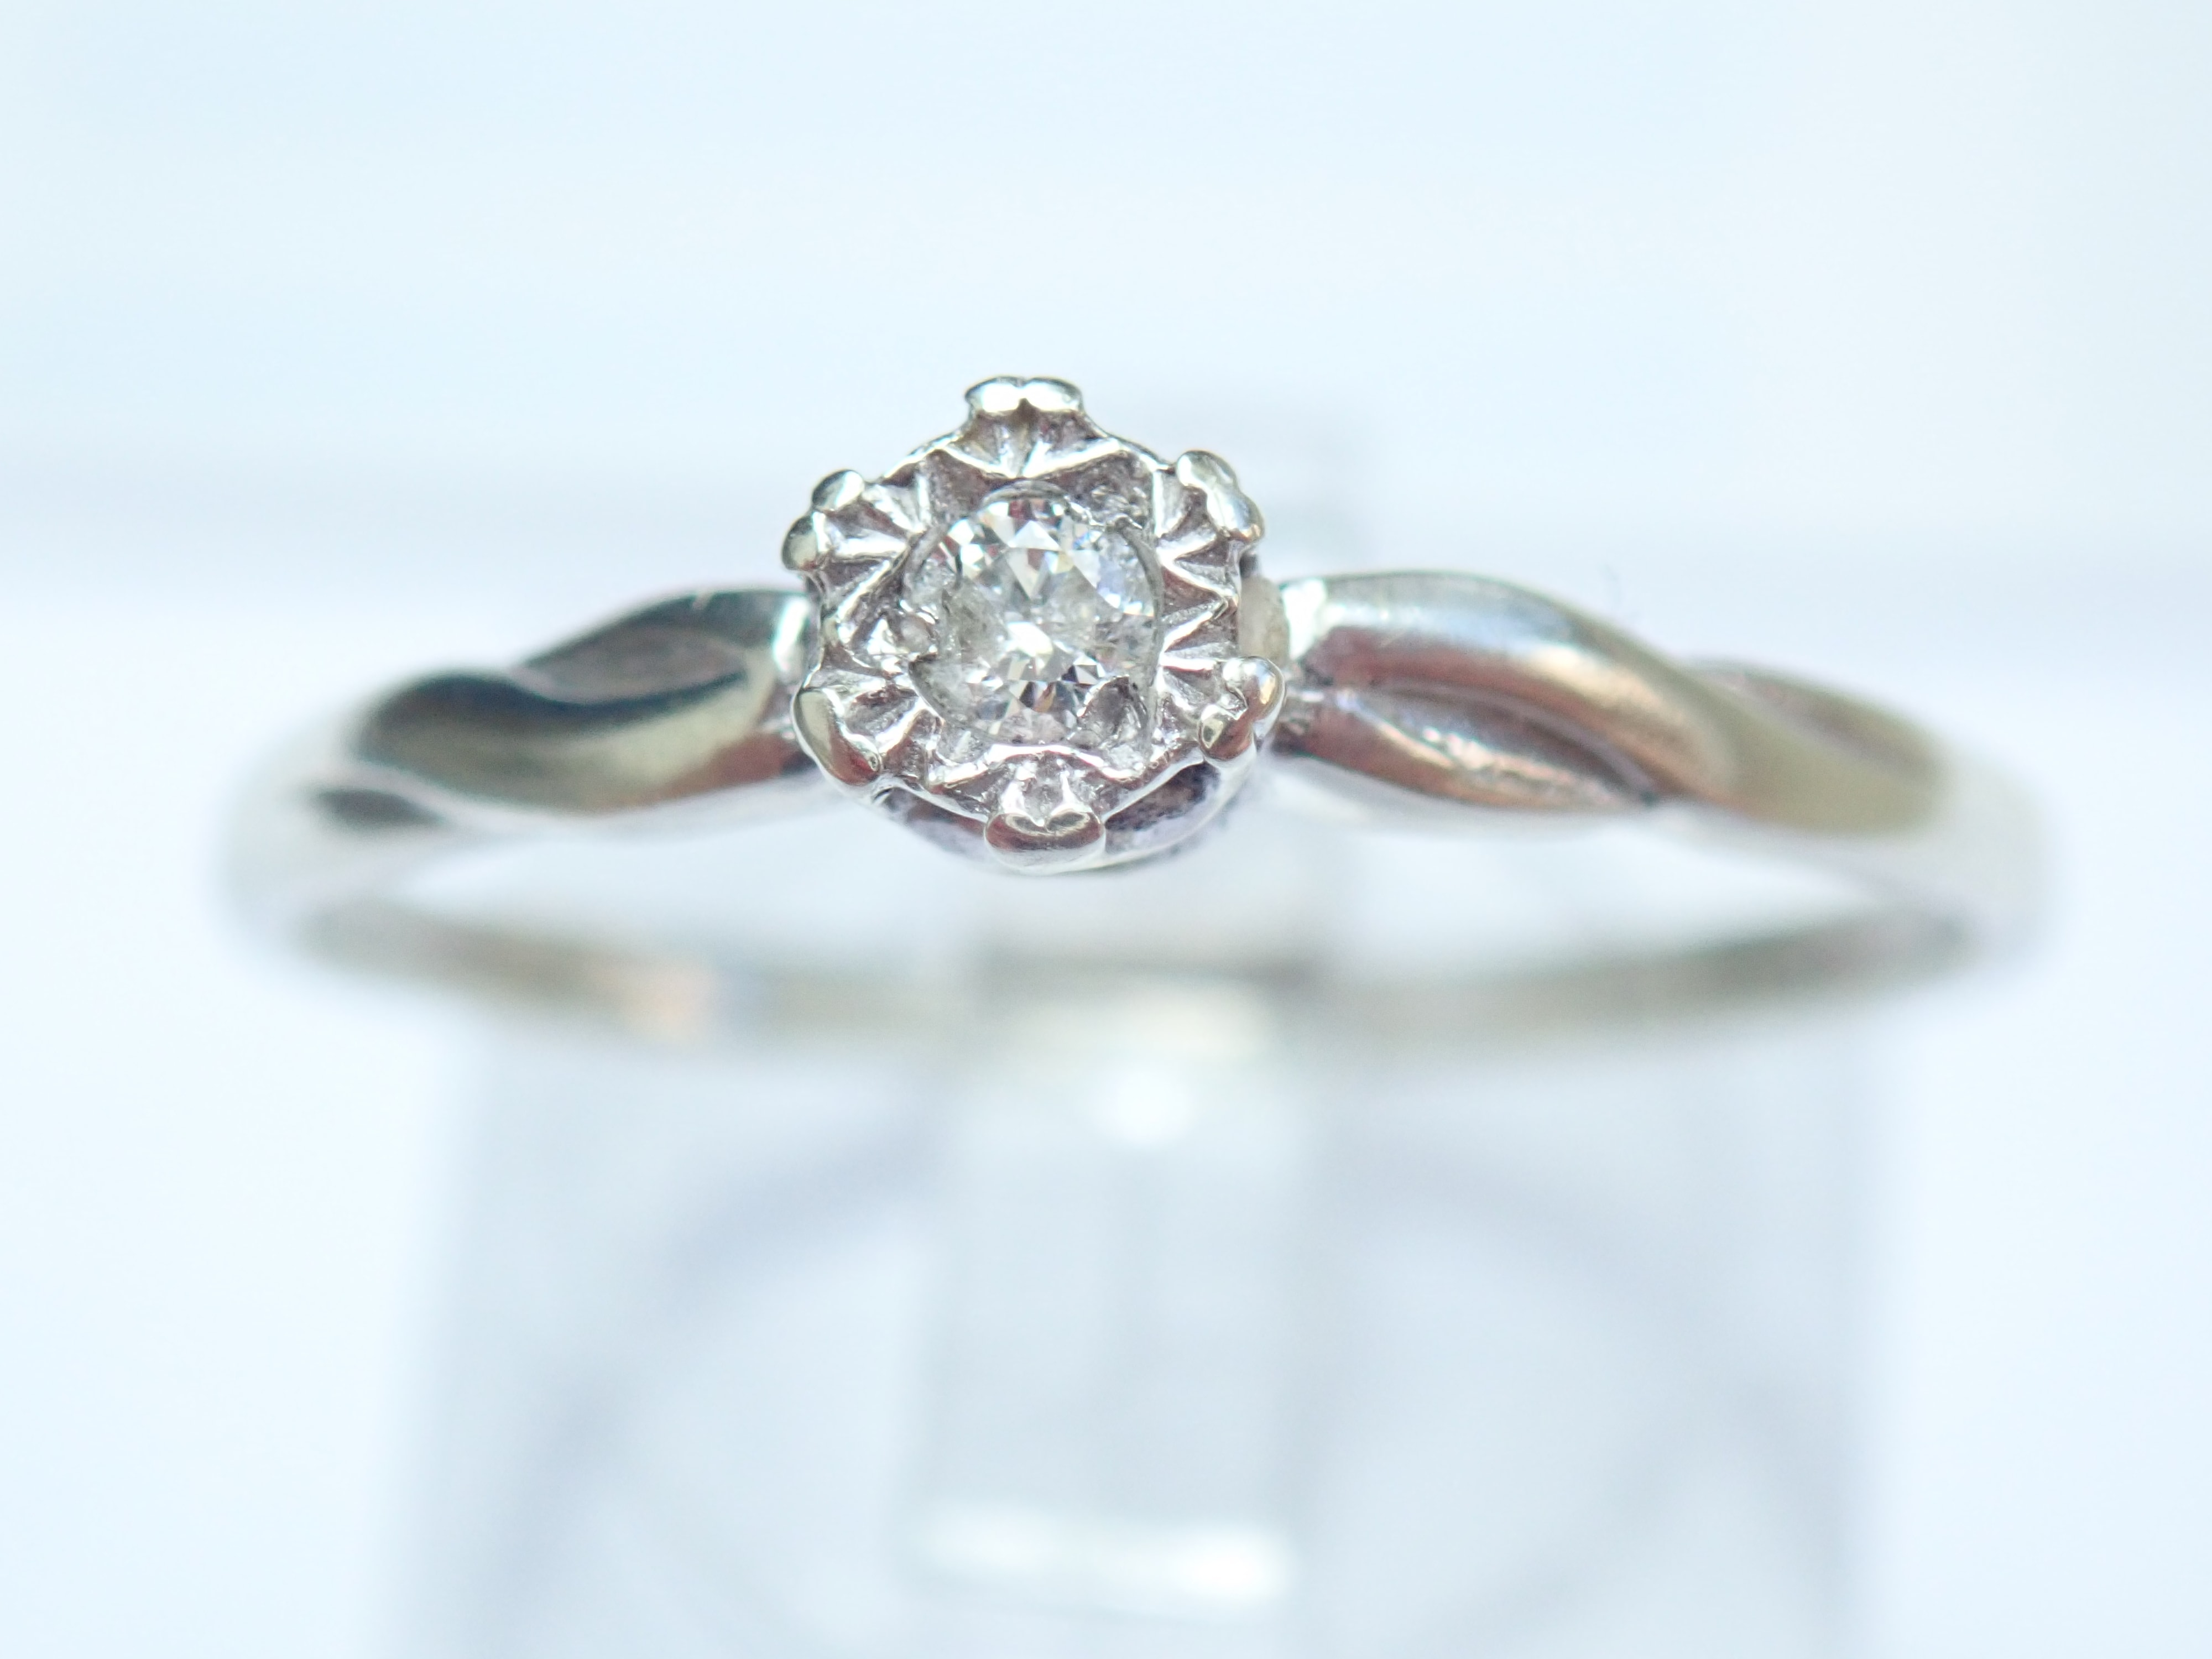 9K White Gold Diamond Ring Illusion Setting and Twist effect Size T -1.71gms #25